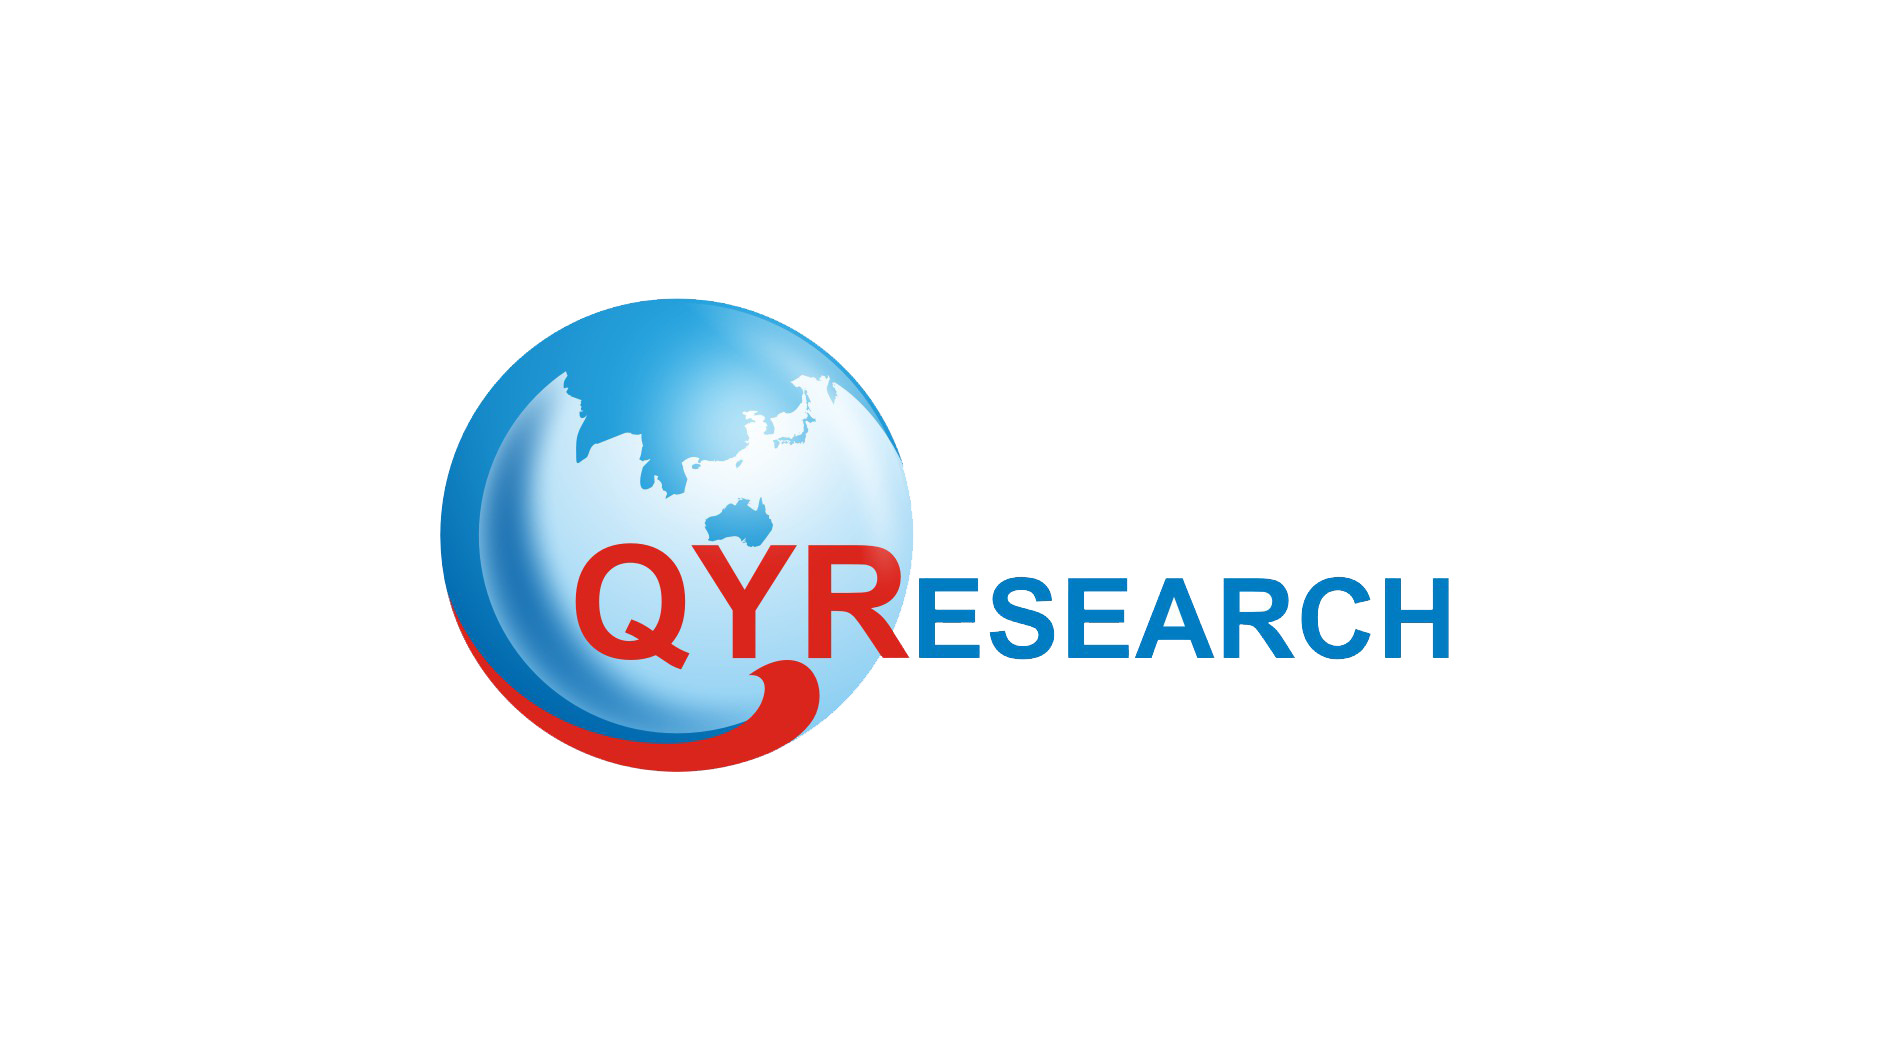 Wind Power Generators I Market Overview, Demand, Size, Growth, Key Vendors and Forecast 2025